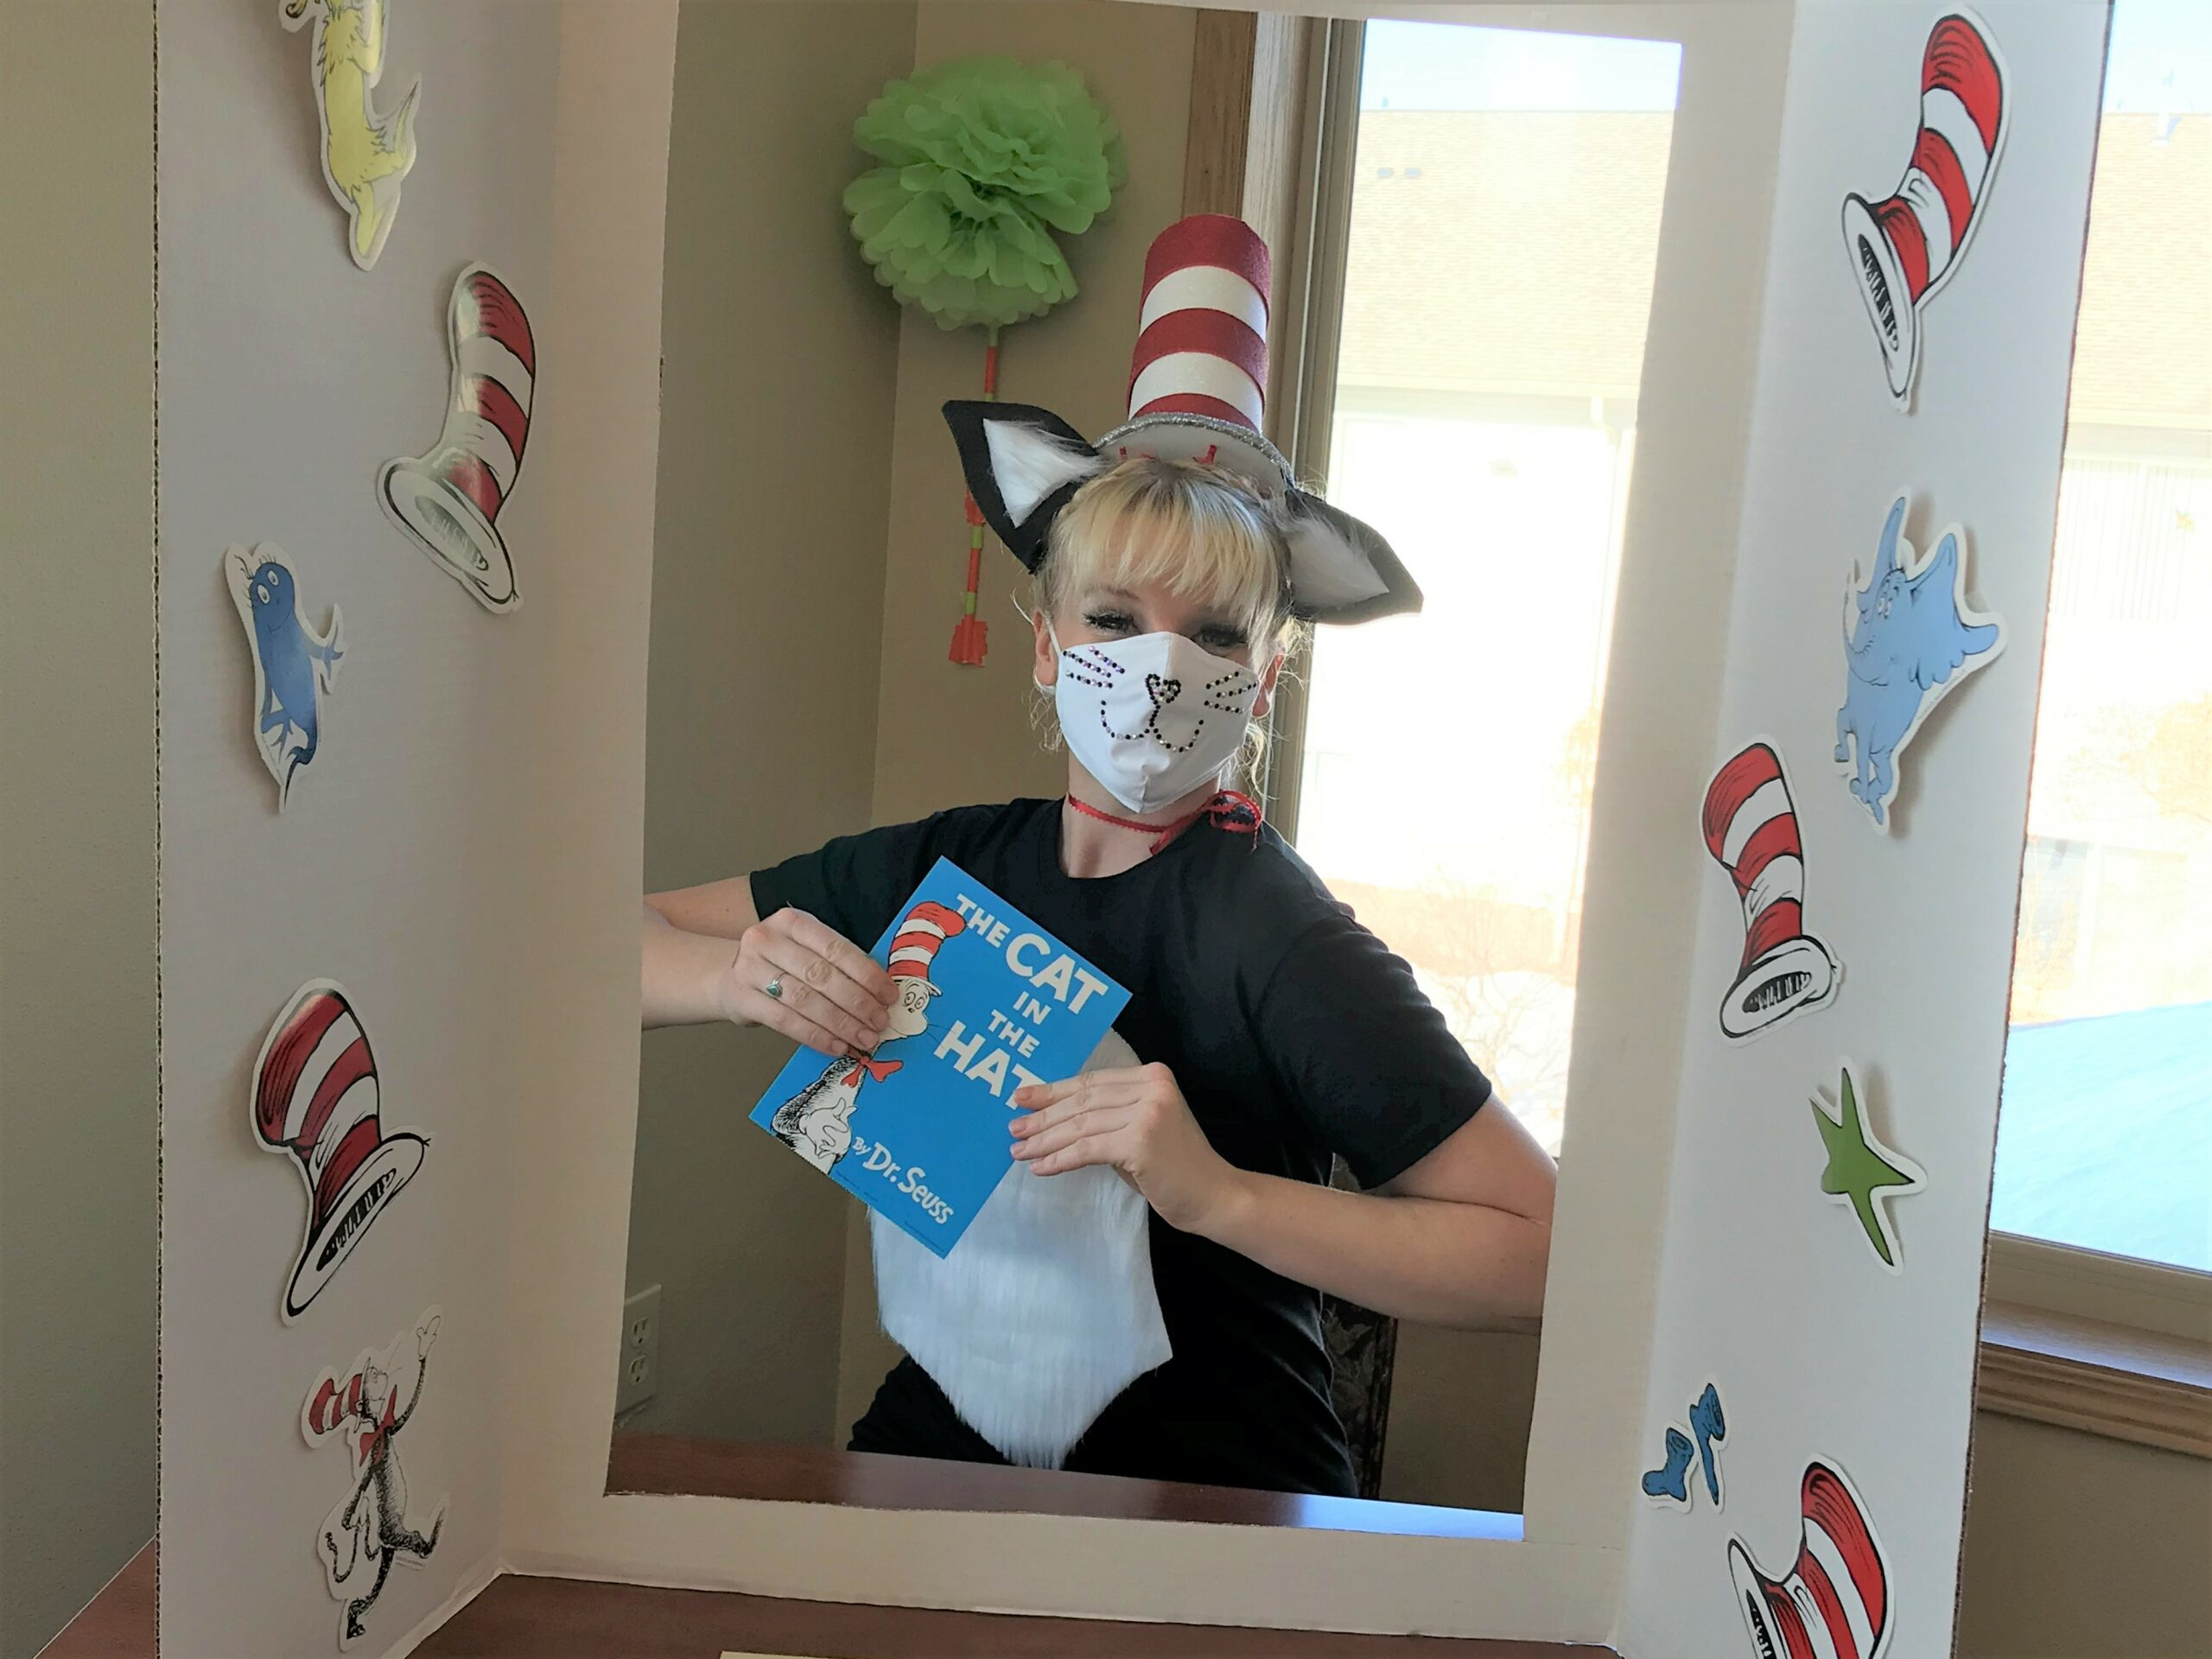 Jen from the kitchen getting into the spirt of the party!